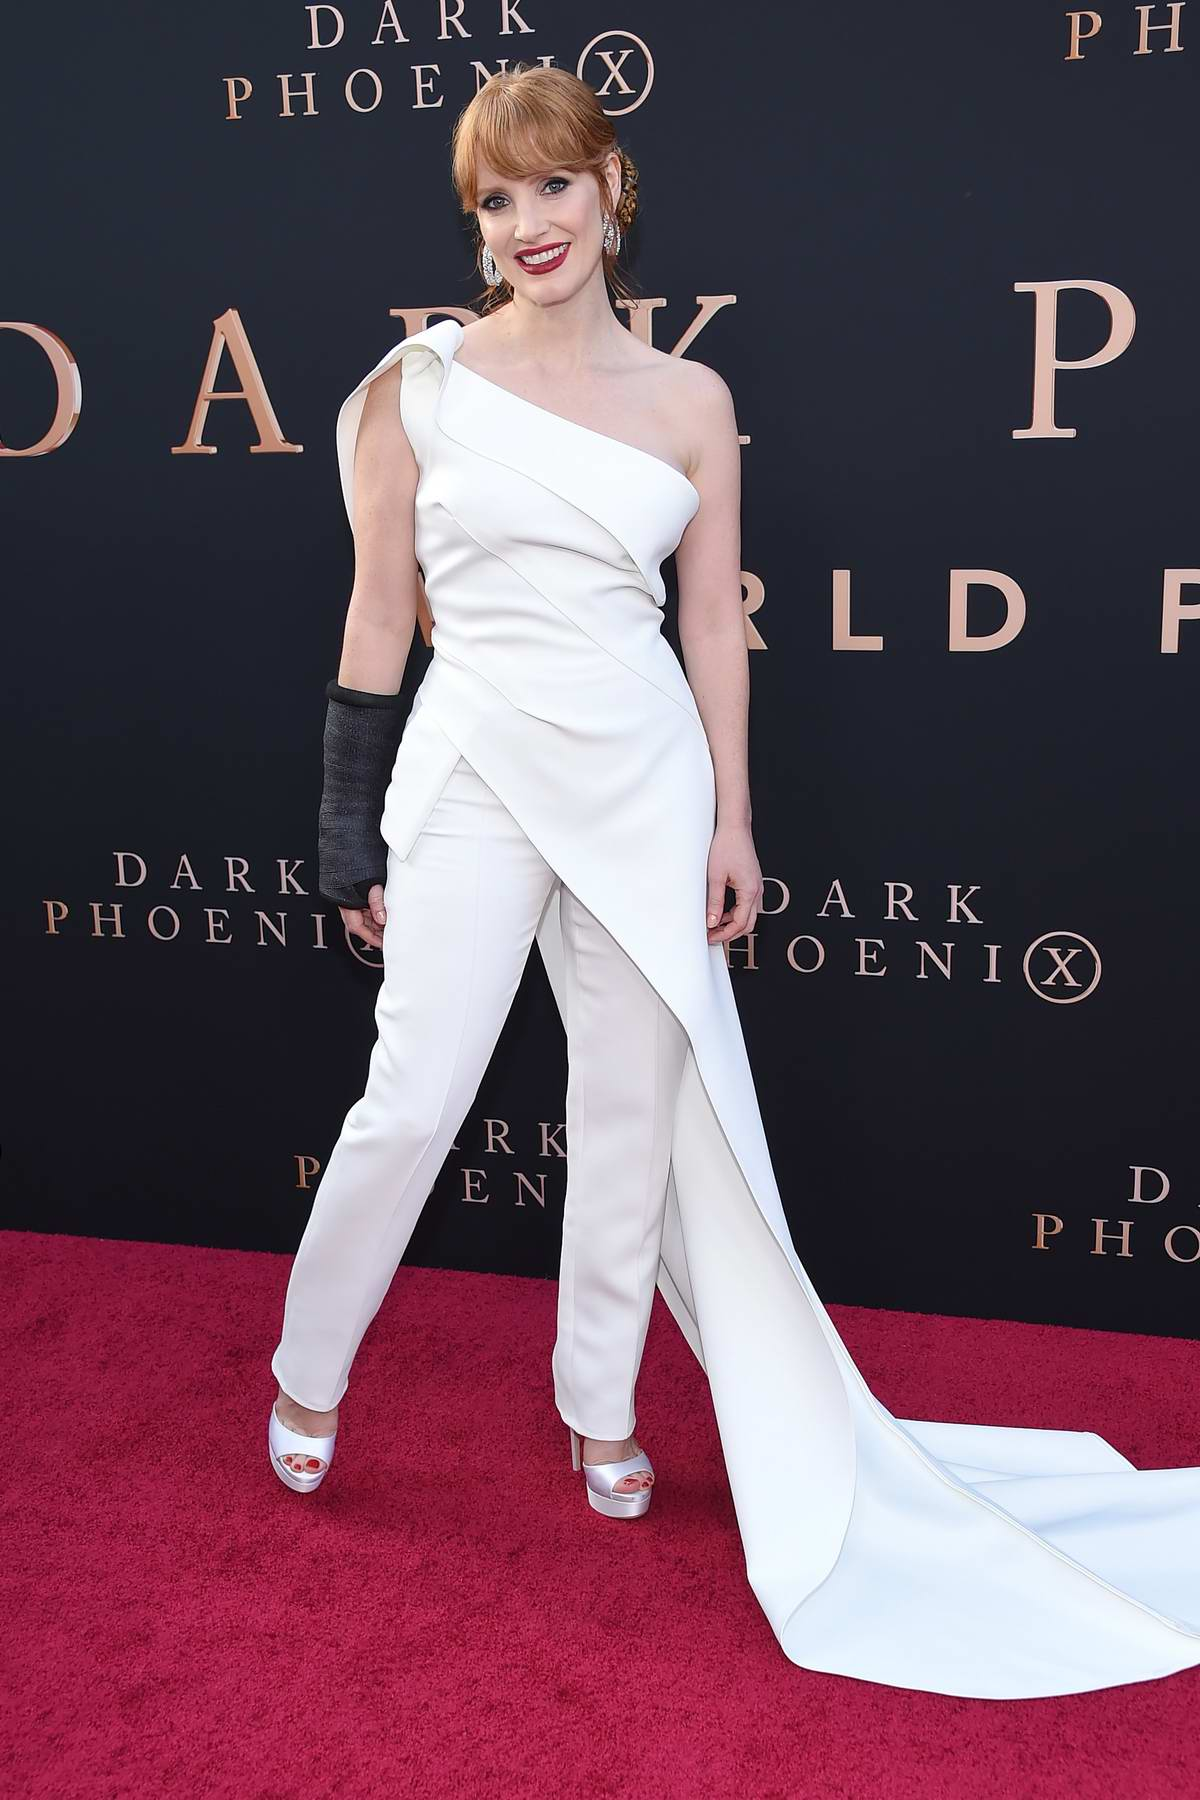 Jessica Chastain attends 'X-Men: Dark Phoenix' premiere at